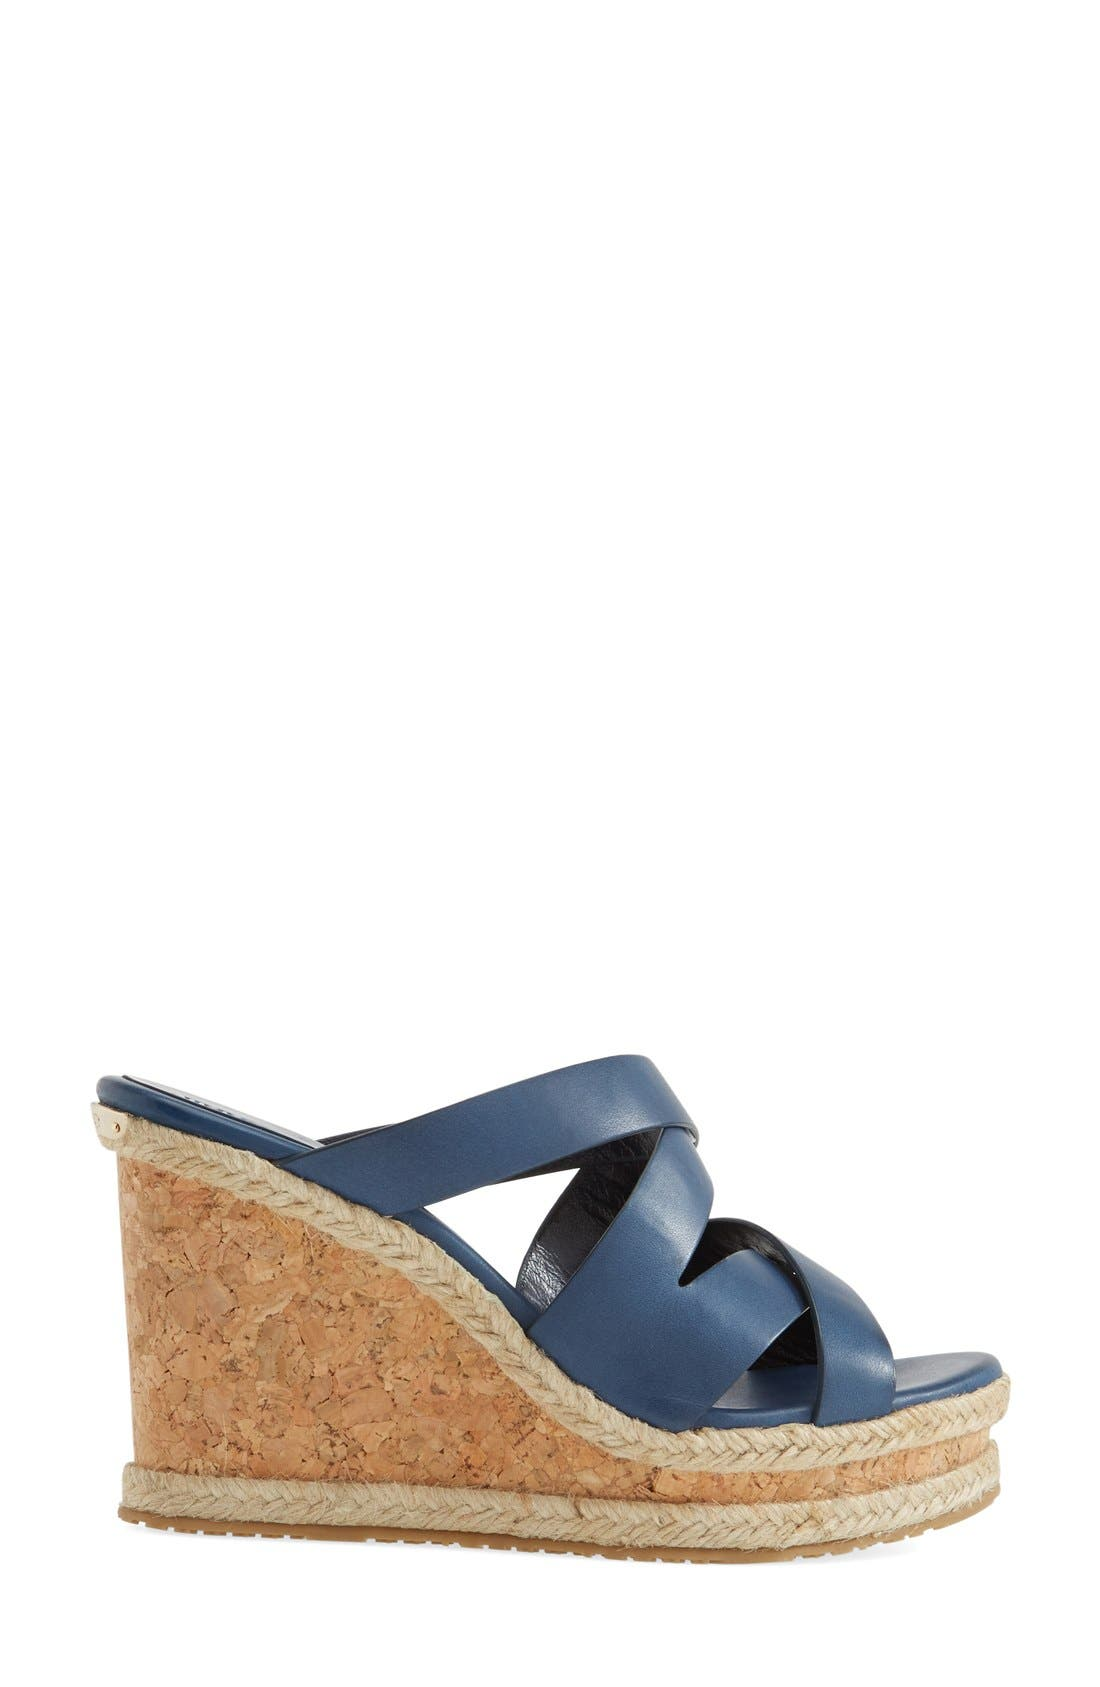 'Prisma' Leather Wedge Sandal,                             Alternate thumbnail 4, color,                             Navy